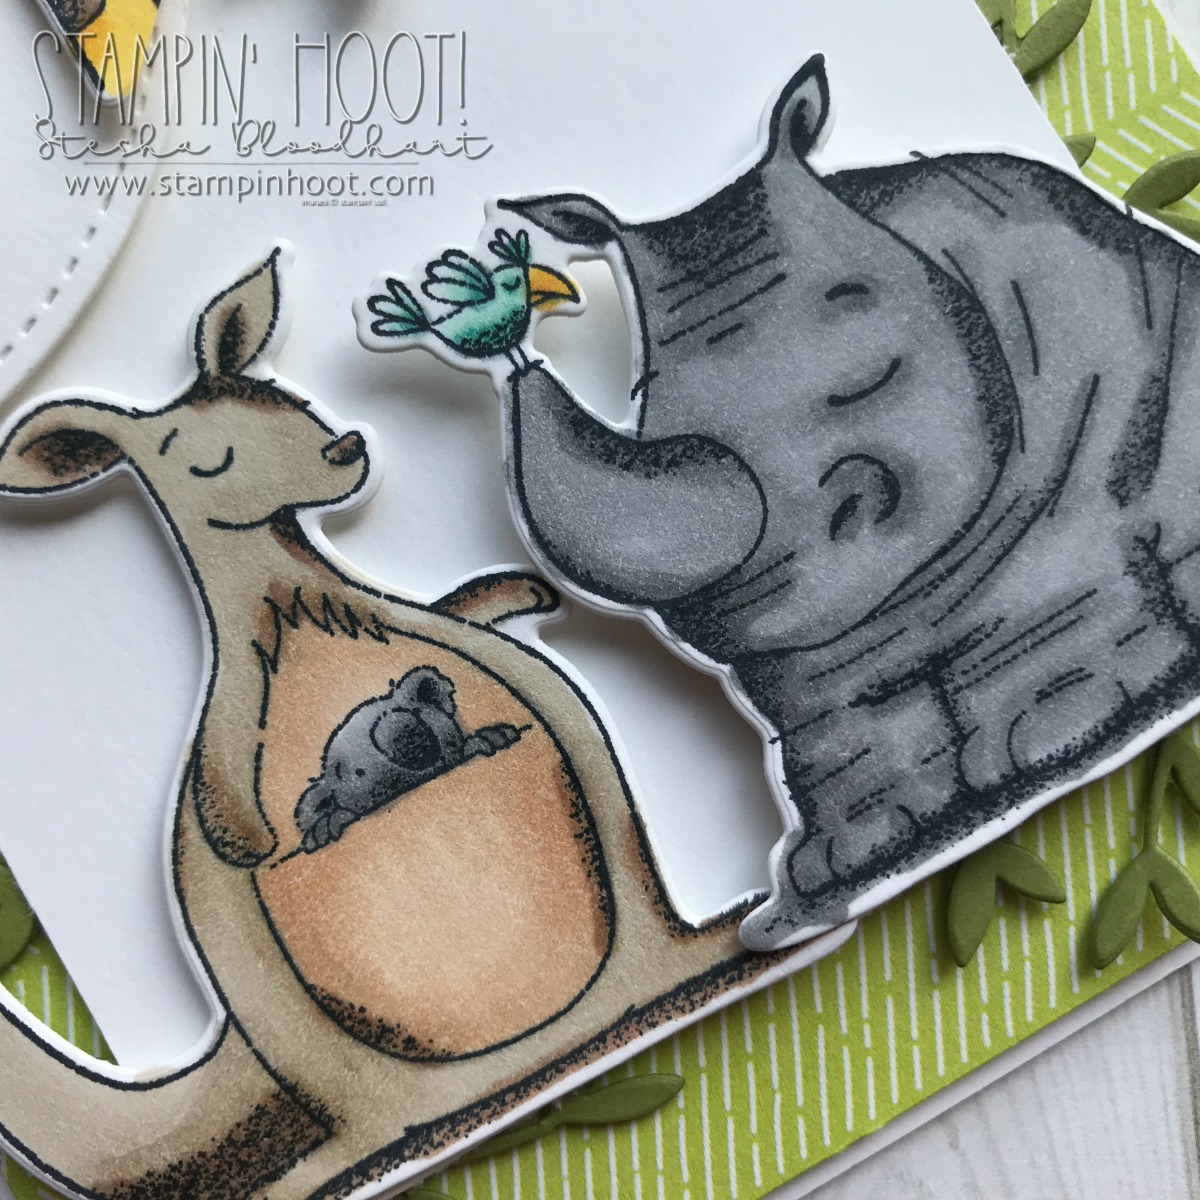 Wild About You Card using Animal Outing Bundle by Stampin' Up! From the Animal Expedition Suite of Products. Handmade Card Colored with Stampin' Blends by Stesha Bloodhart, Stampin' Hoot! #steshabloodhart #stampinhoot